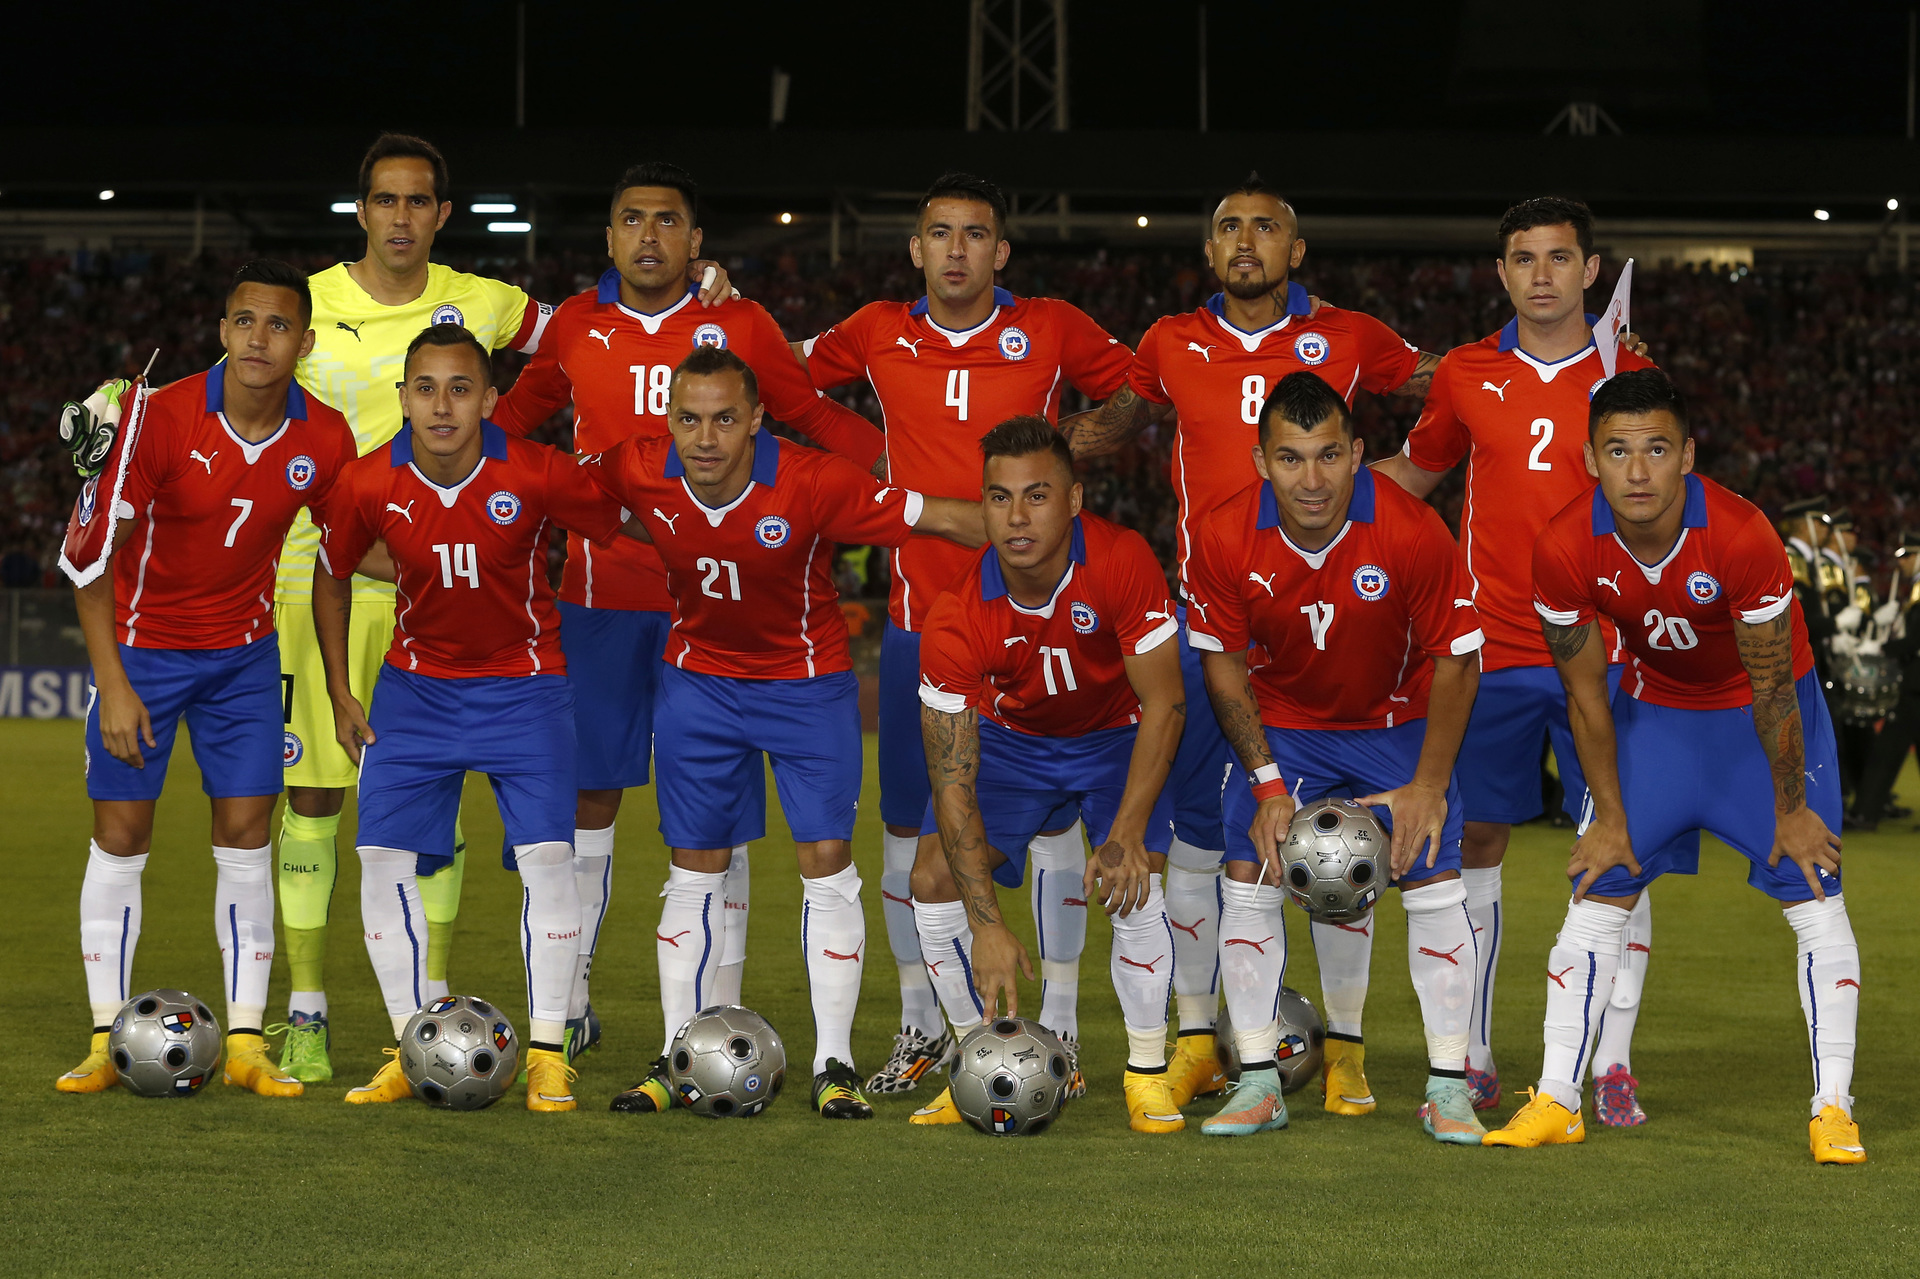 Chile-14-15-PUMA-home-kit-red-blue-white-line-up.jpg